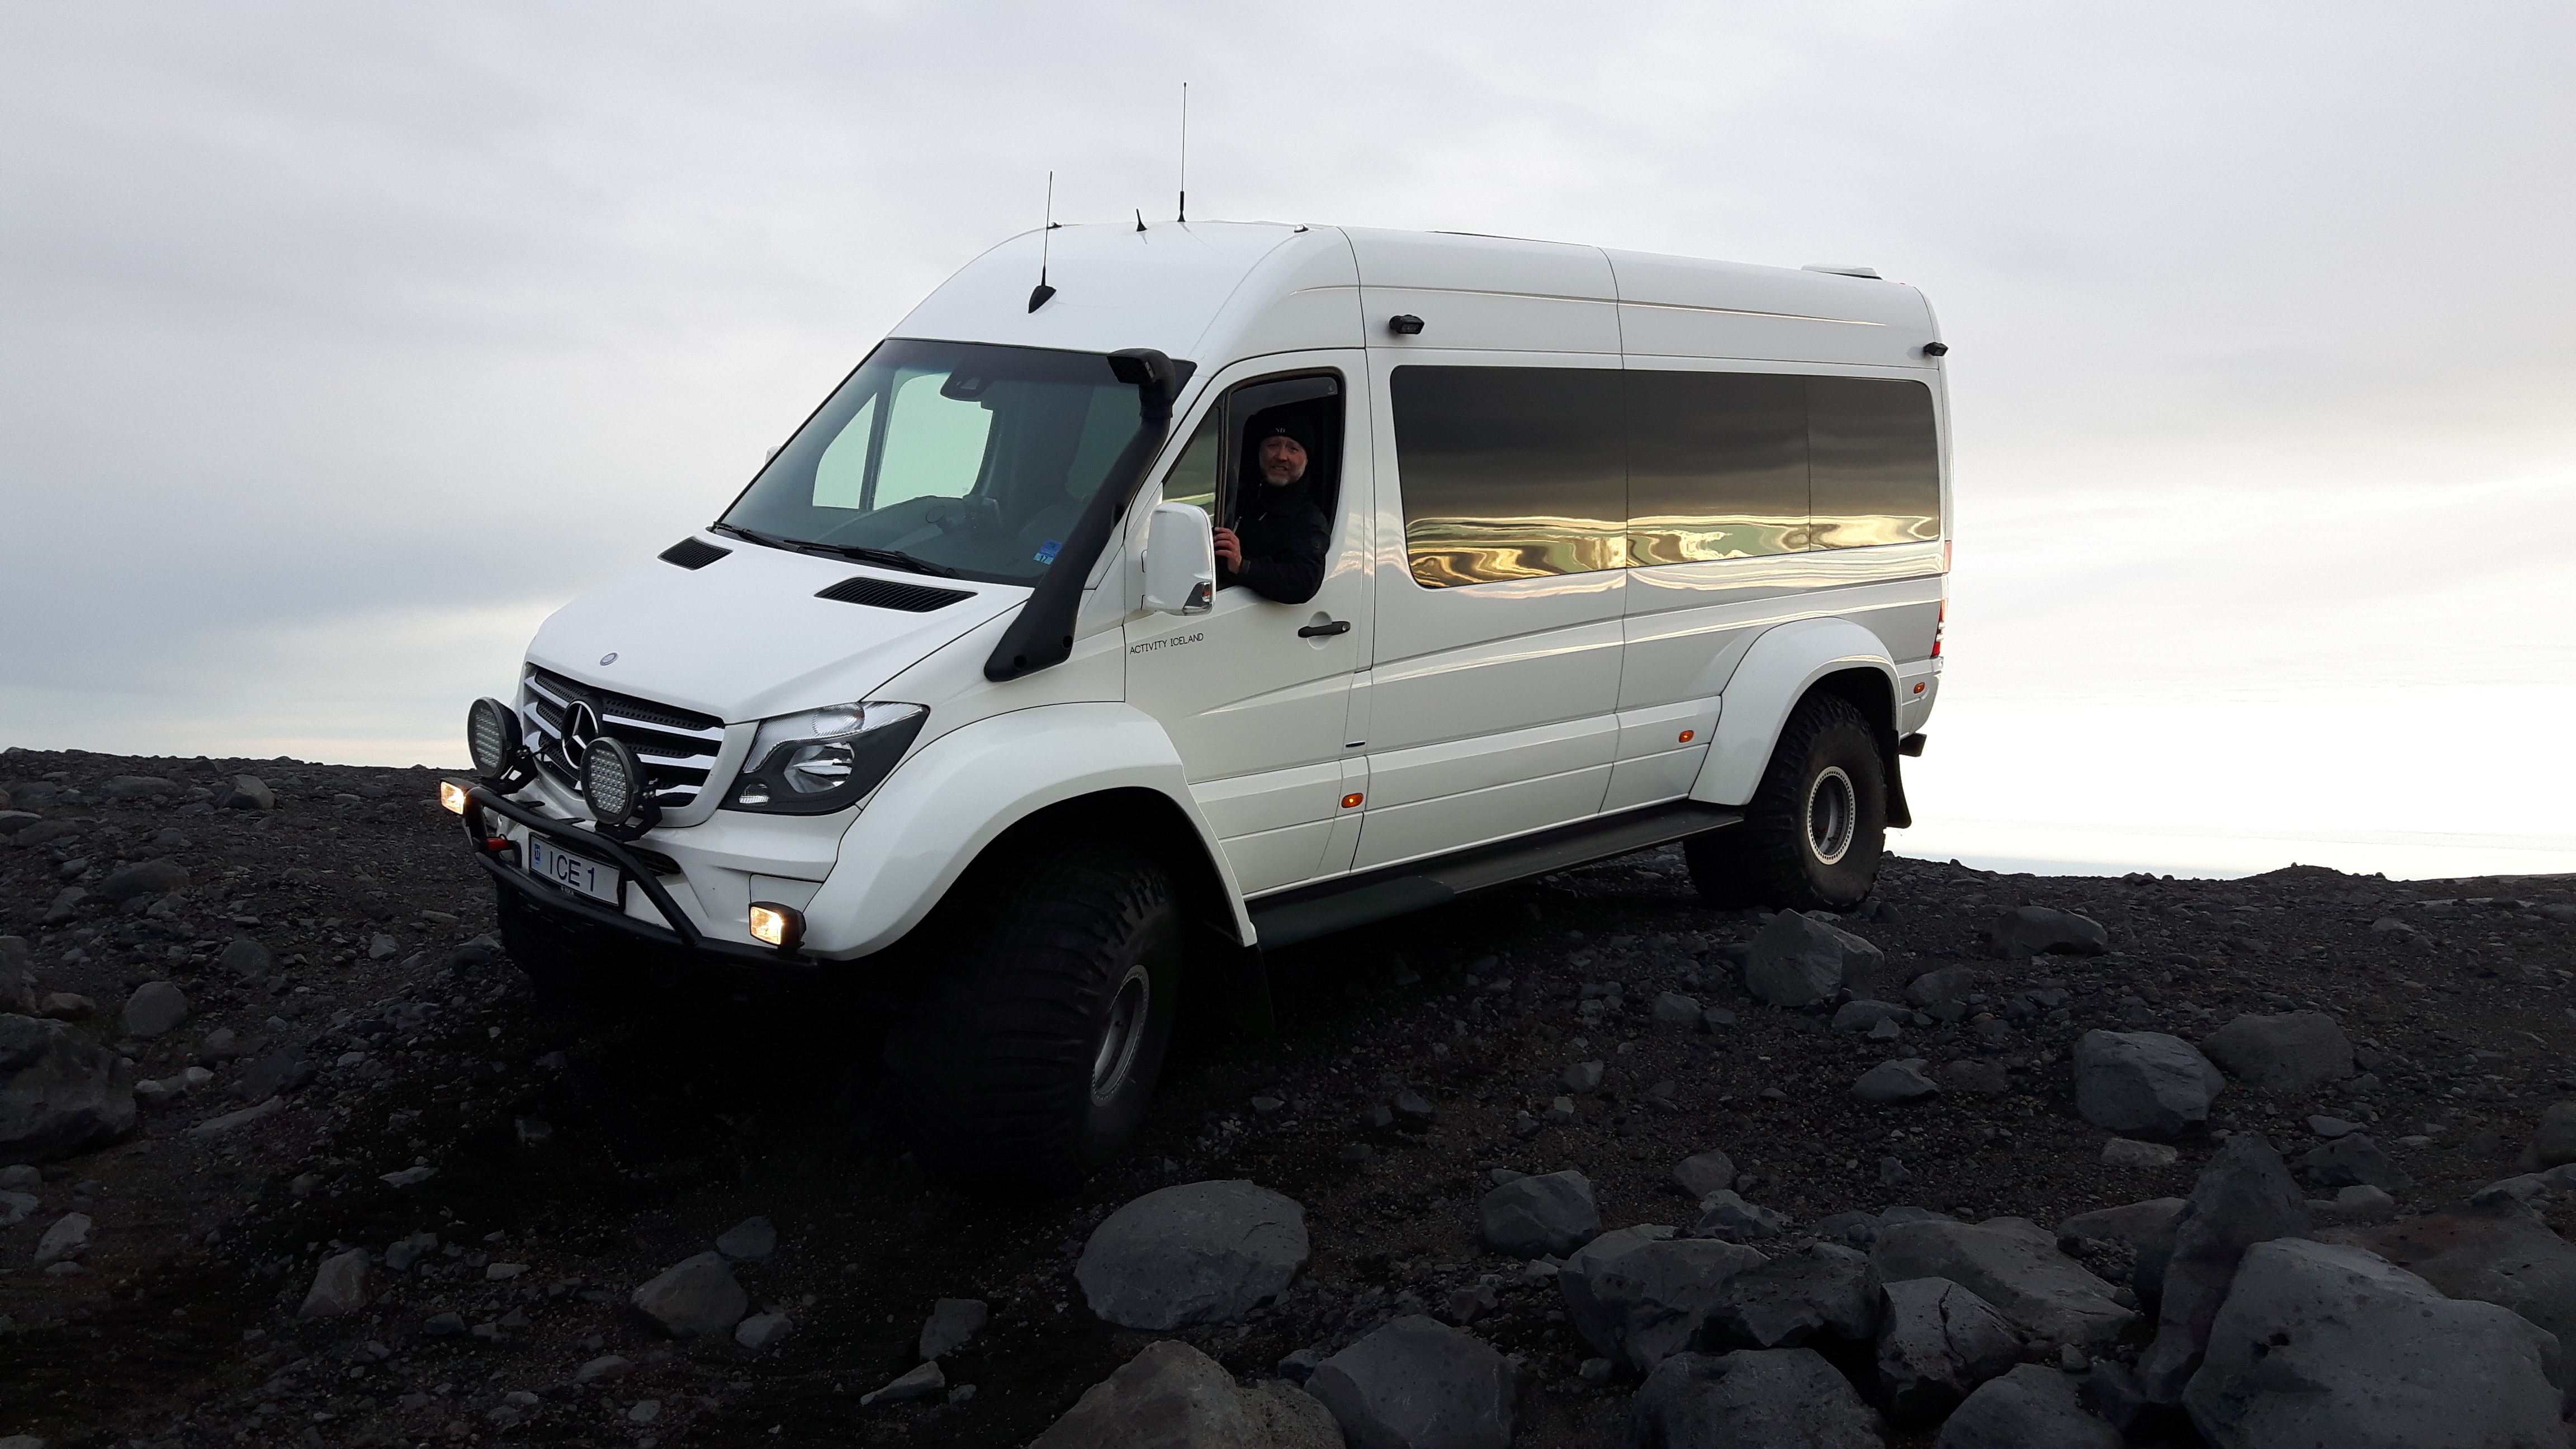 Allow our Super Jeep to take you off the beaten path of Iceland's South Coast